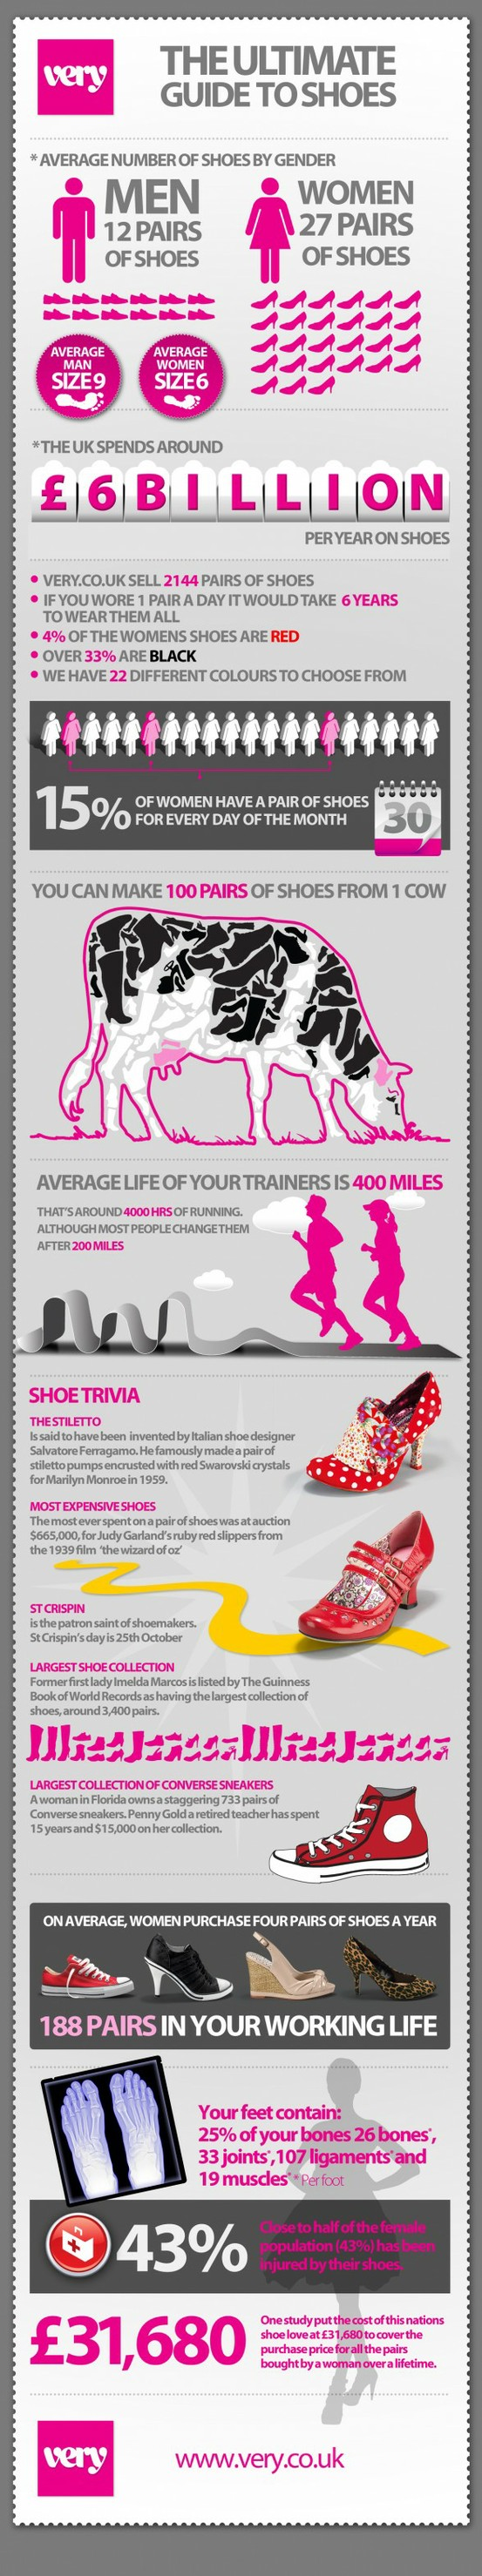 Interesting Facts about your shoes